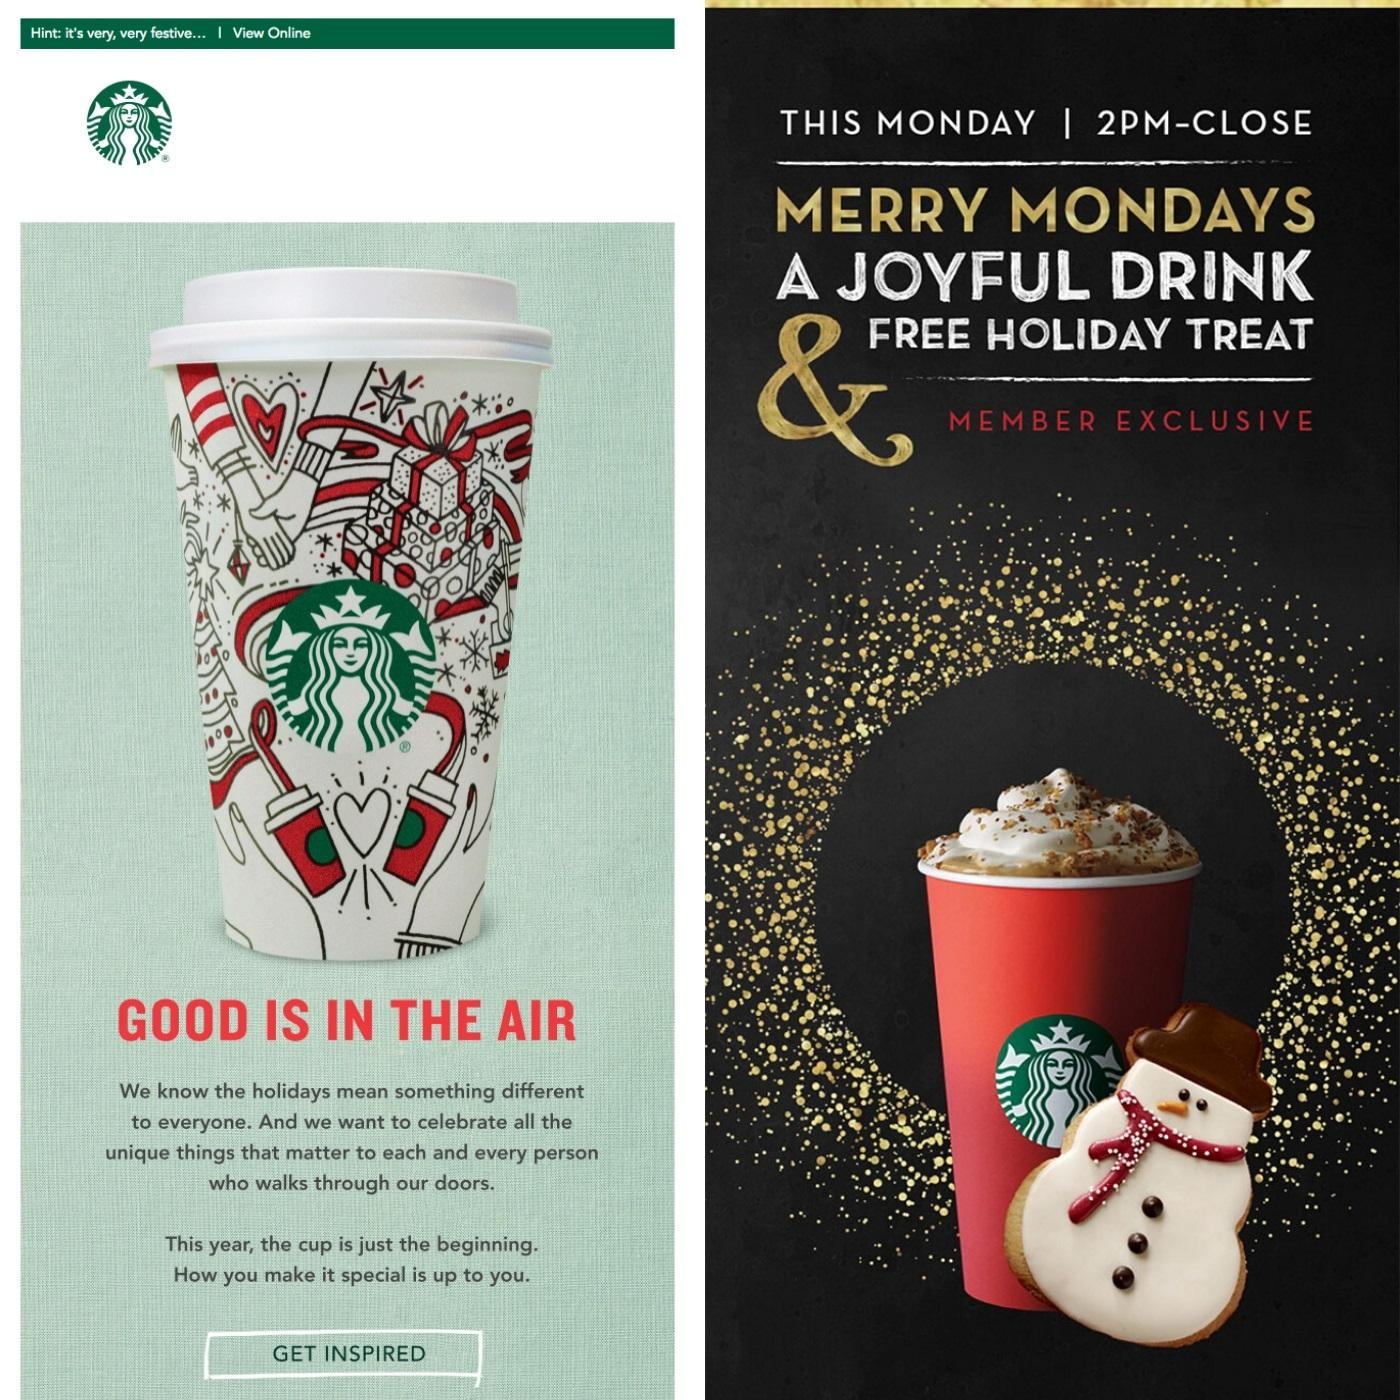 Holiday Starbucks email examples